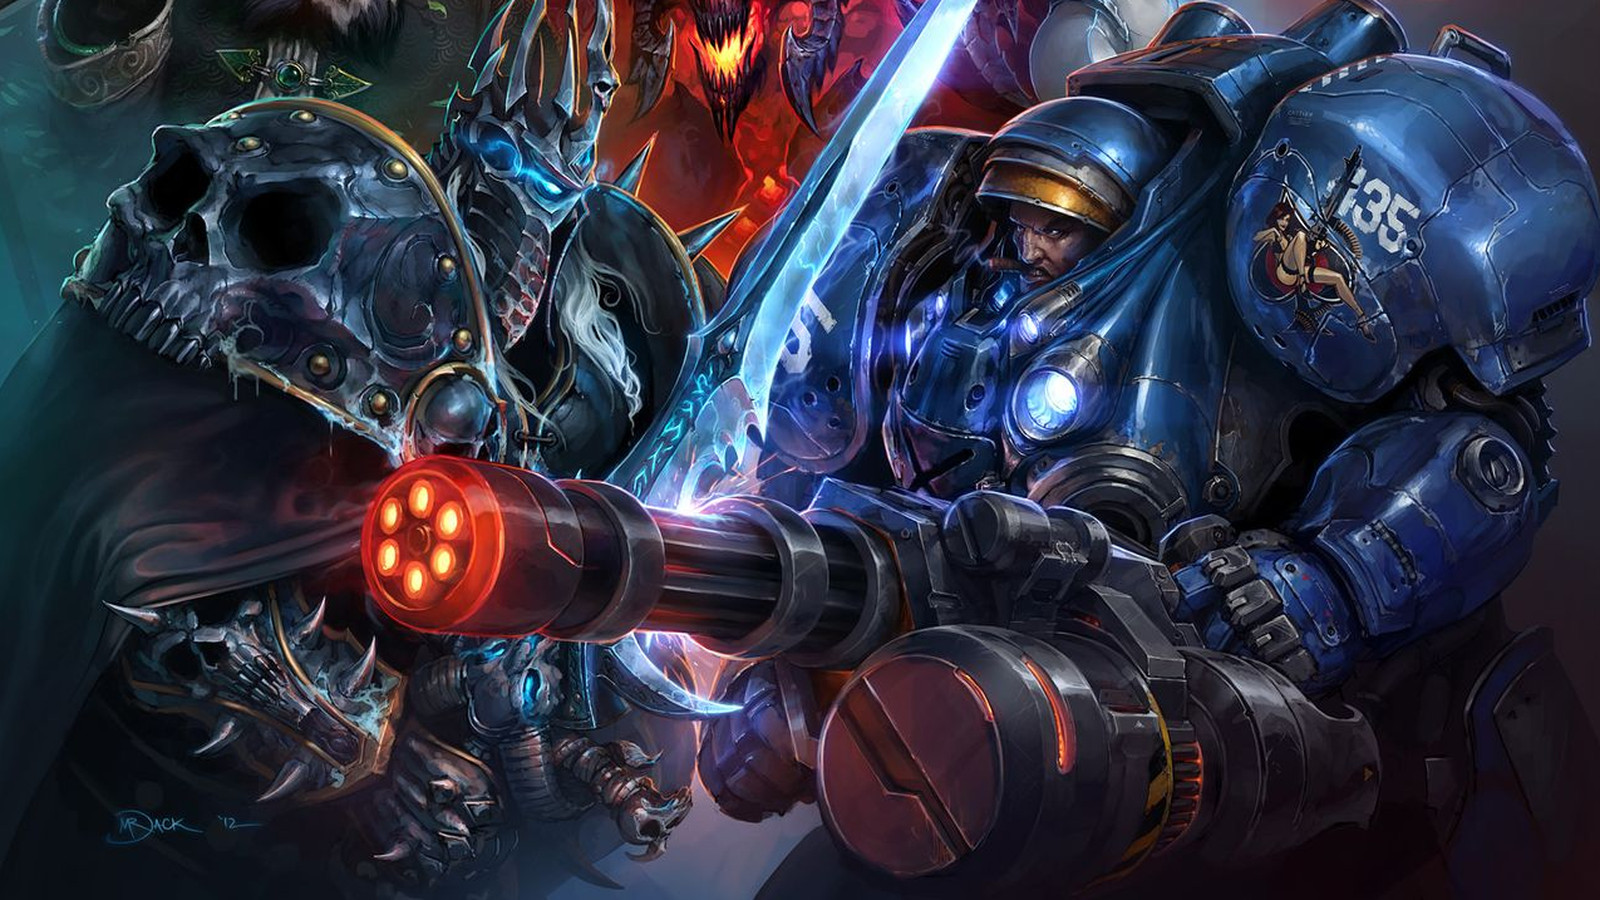 Heroes of the Storm has a new game director with big plans